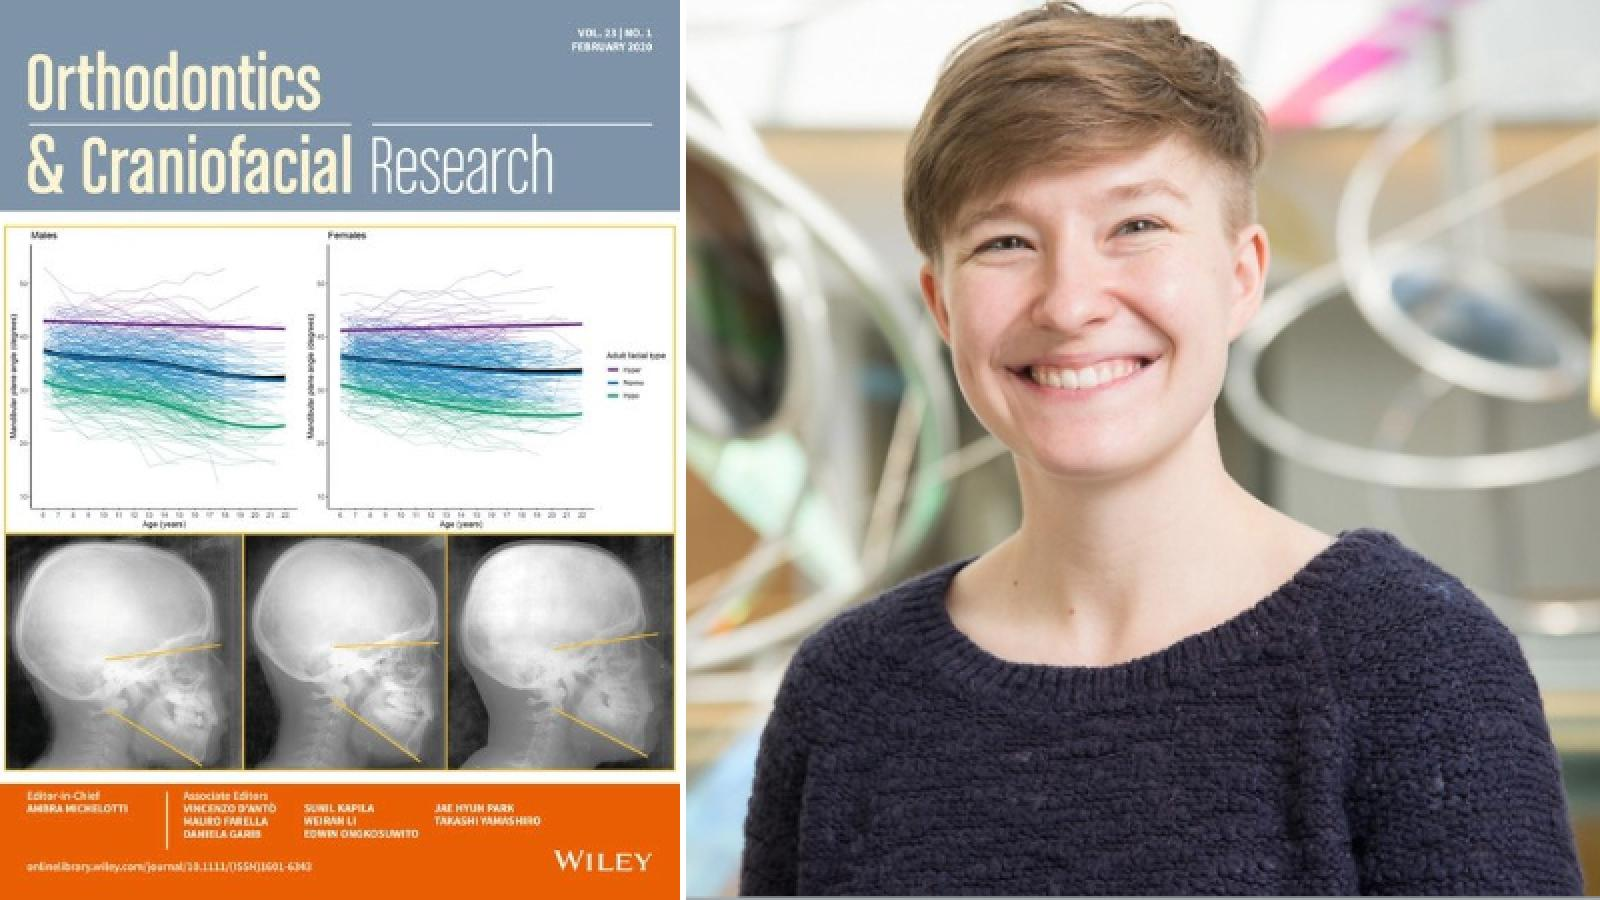 Dr. Anna Hardin, postdoctoral fellow in the Department of Pathology and Anatomical Sciences